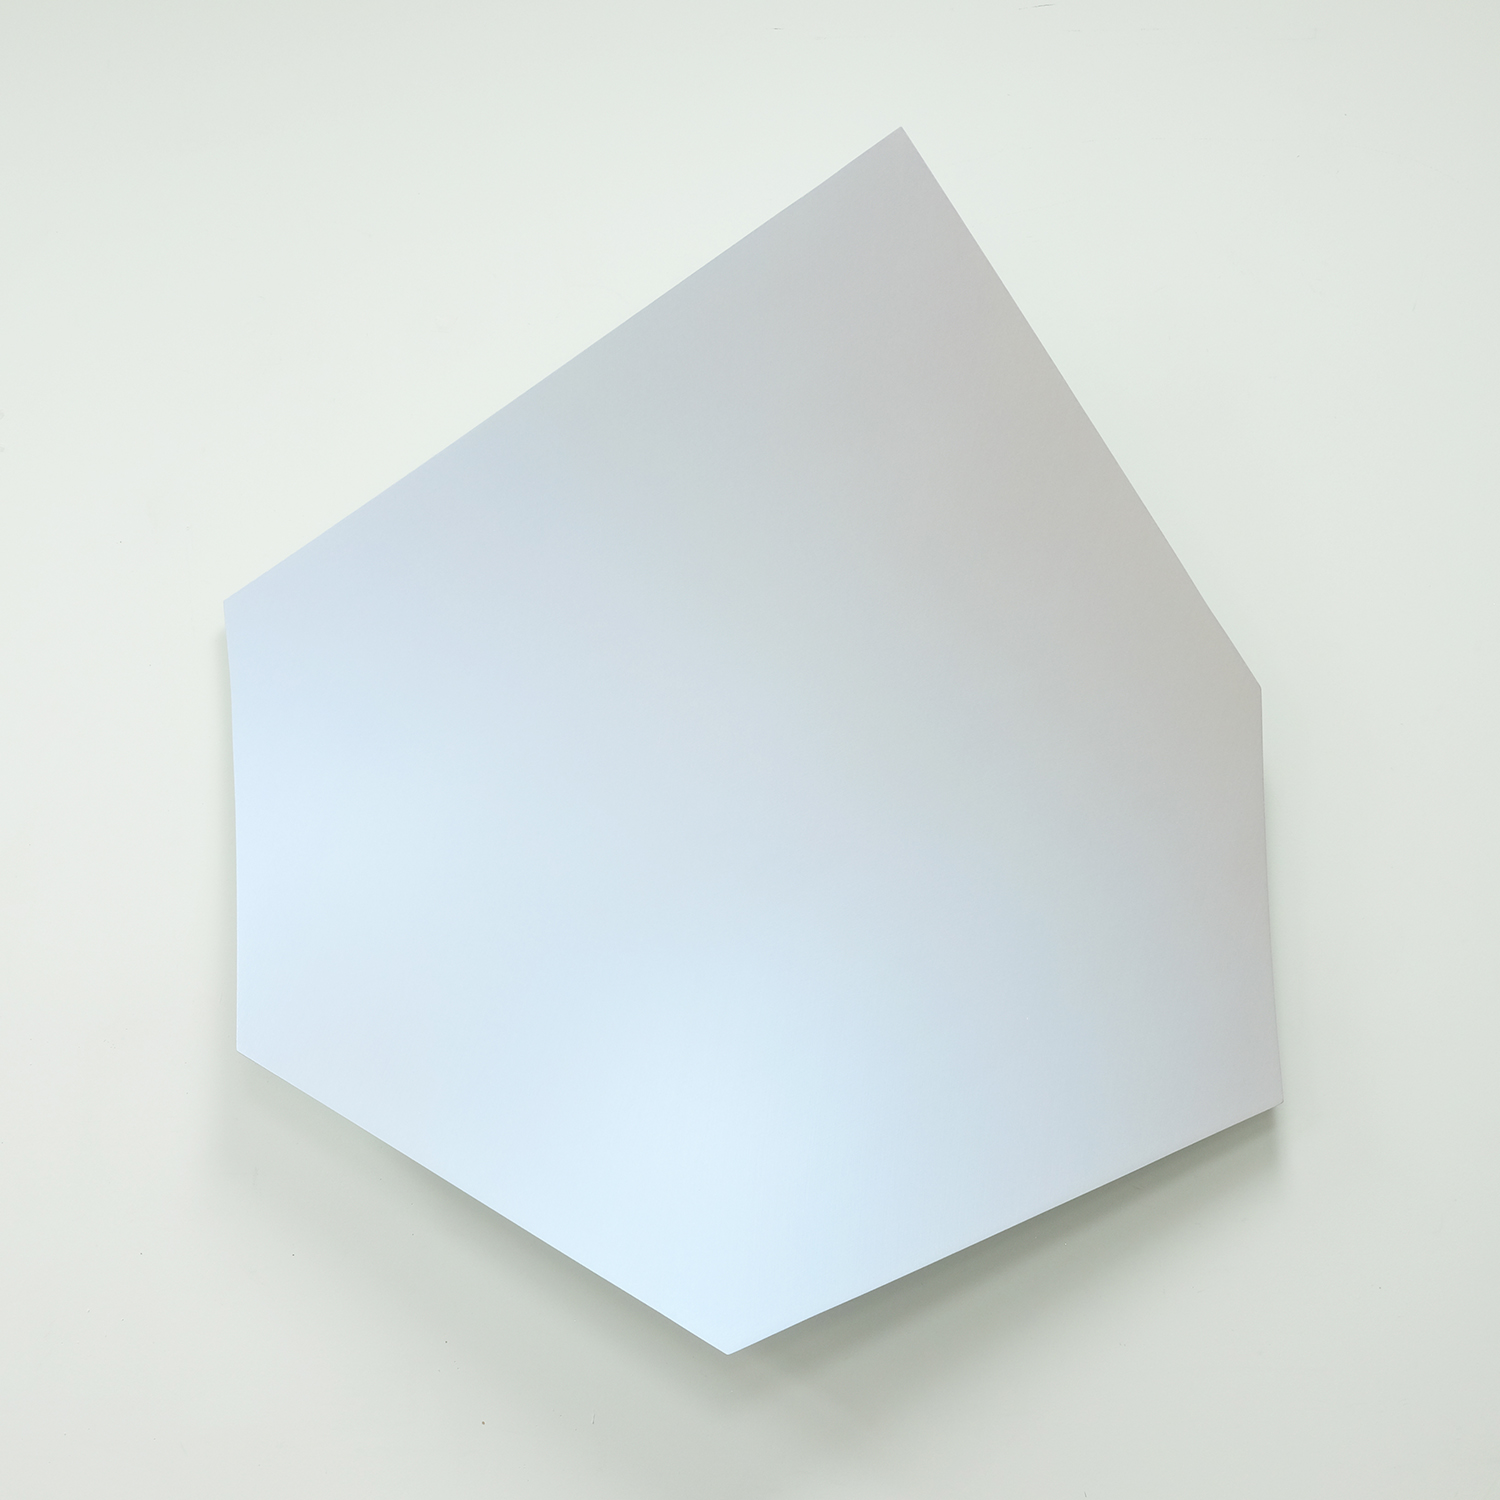 Artwork by Matthew Hawtin. Oblong hexagonal shape that is curved away from wall. Iridescent white surface.